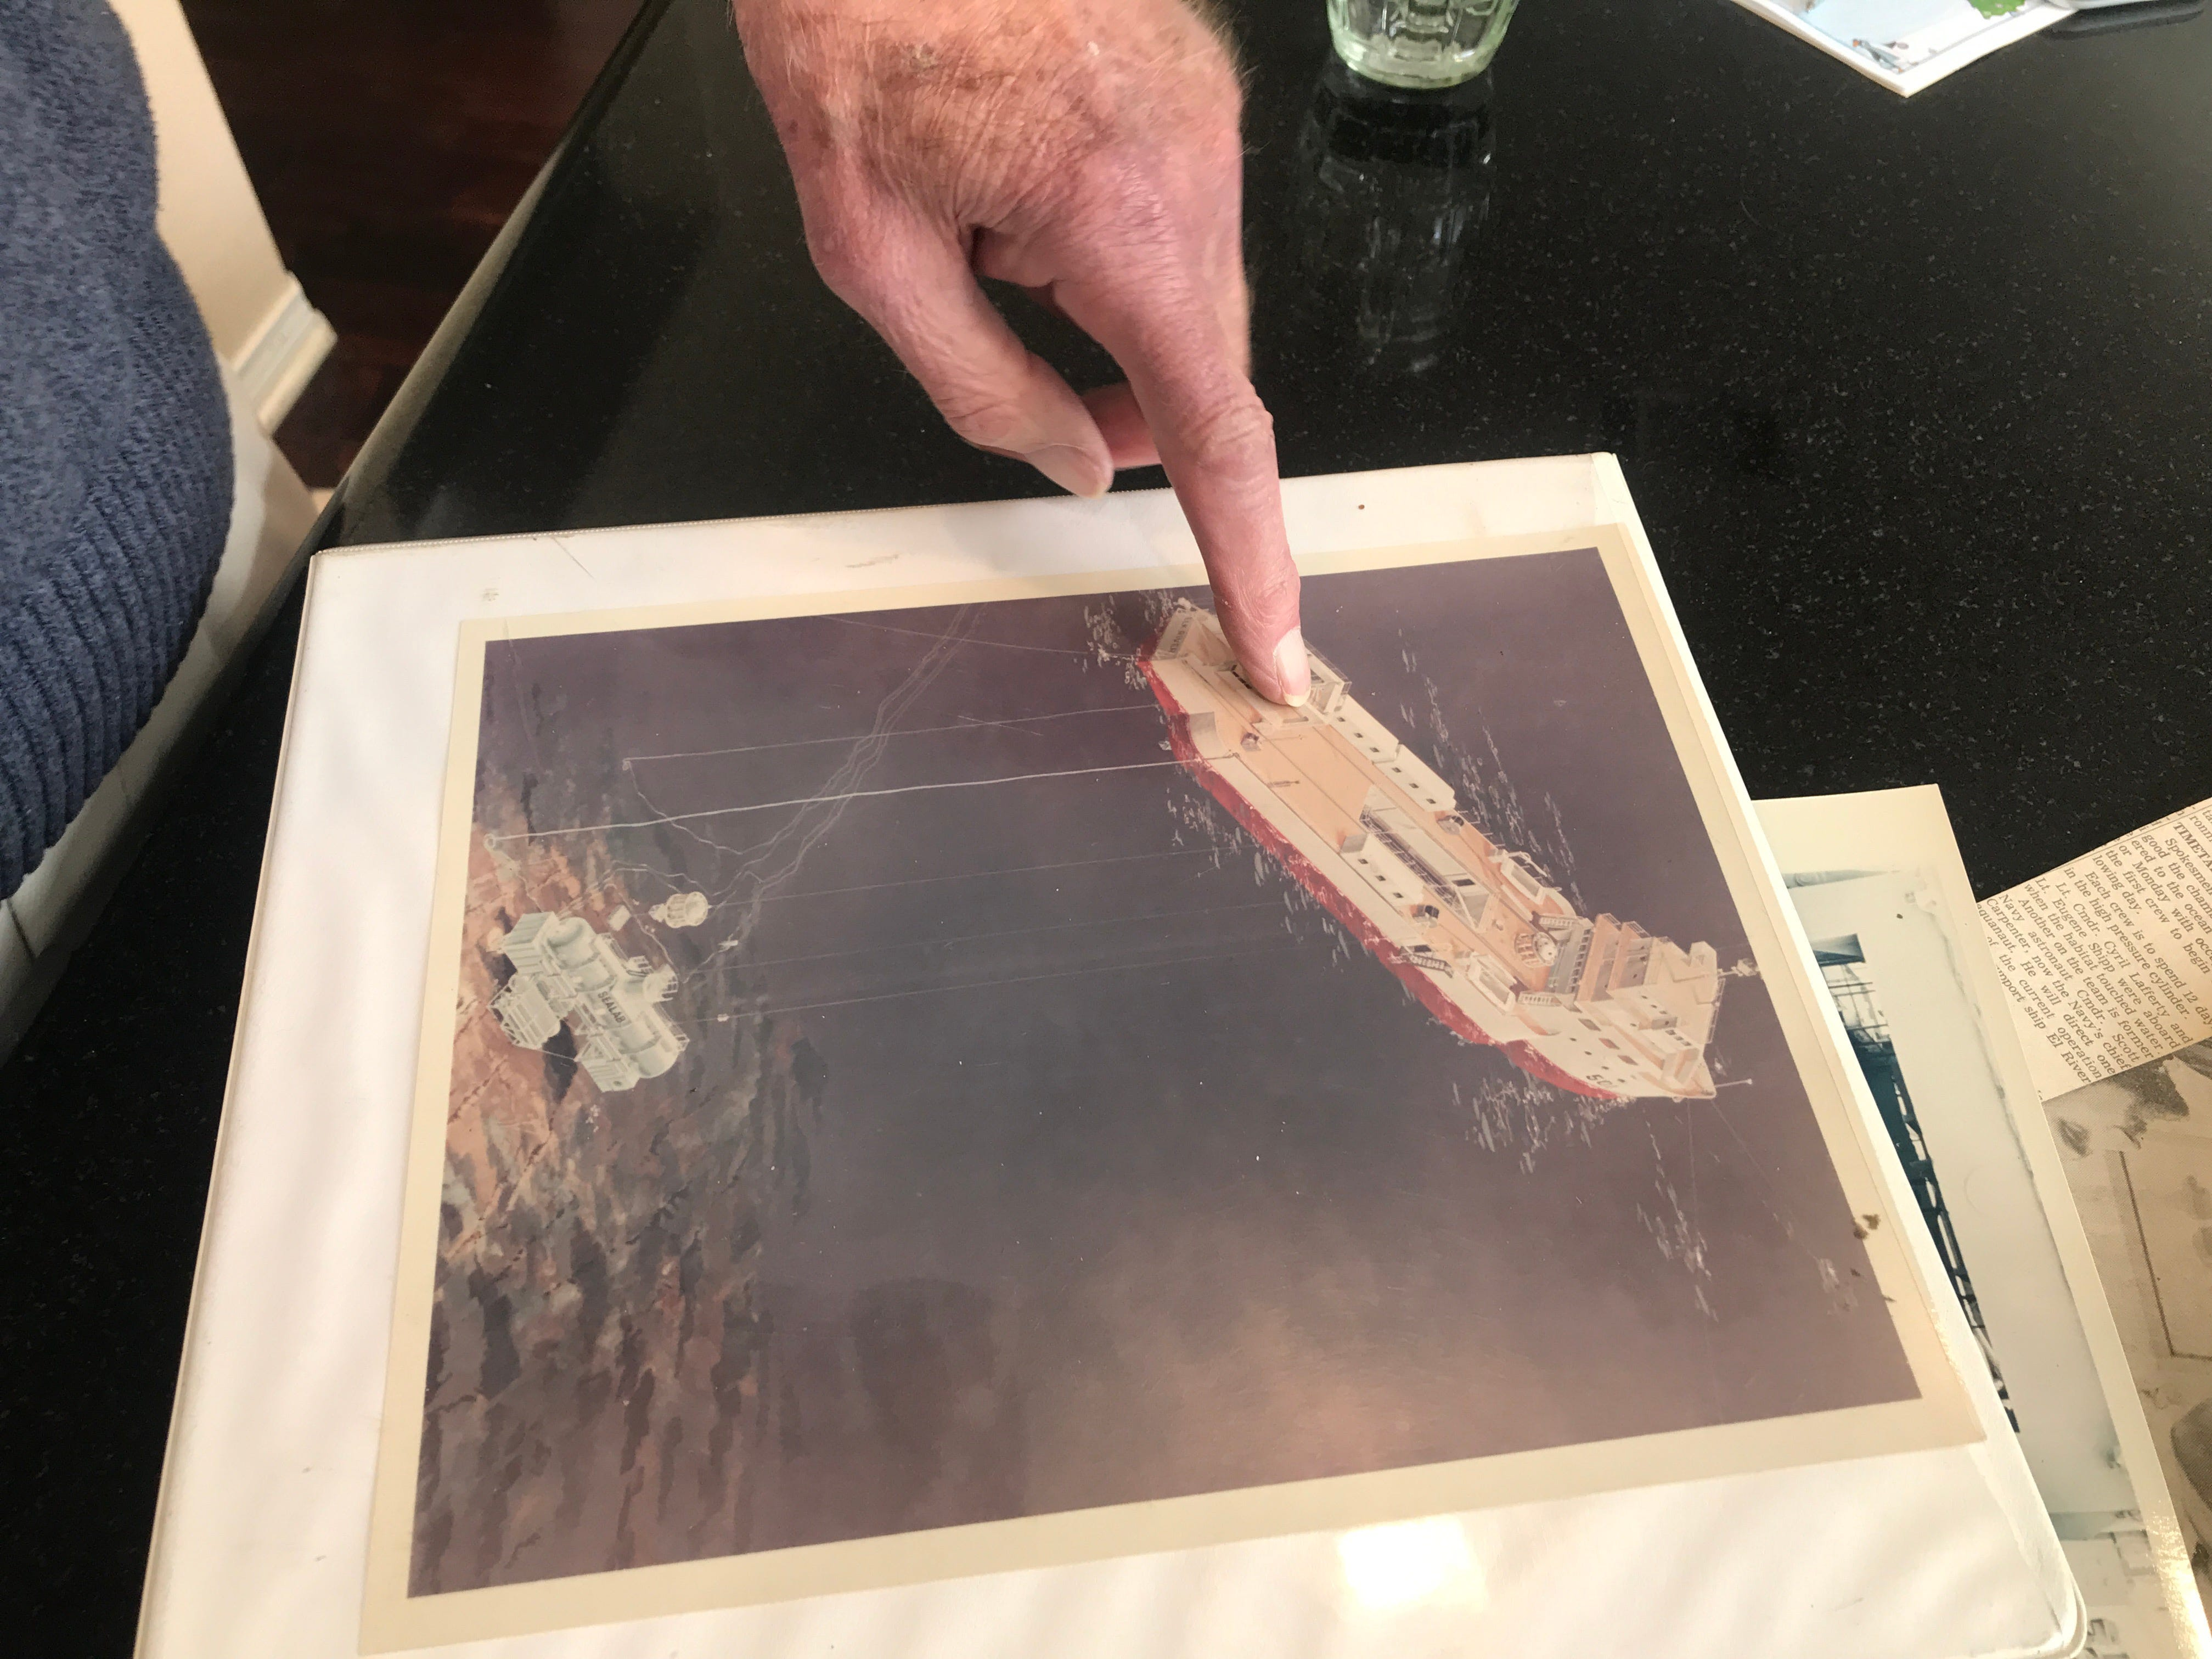 Bob Bornholdt points to an illustration of the ship and underwater Sealab laboratory that were used by the navy's pioneering aquanauts.